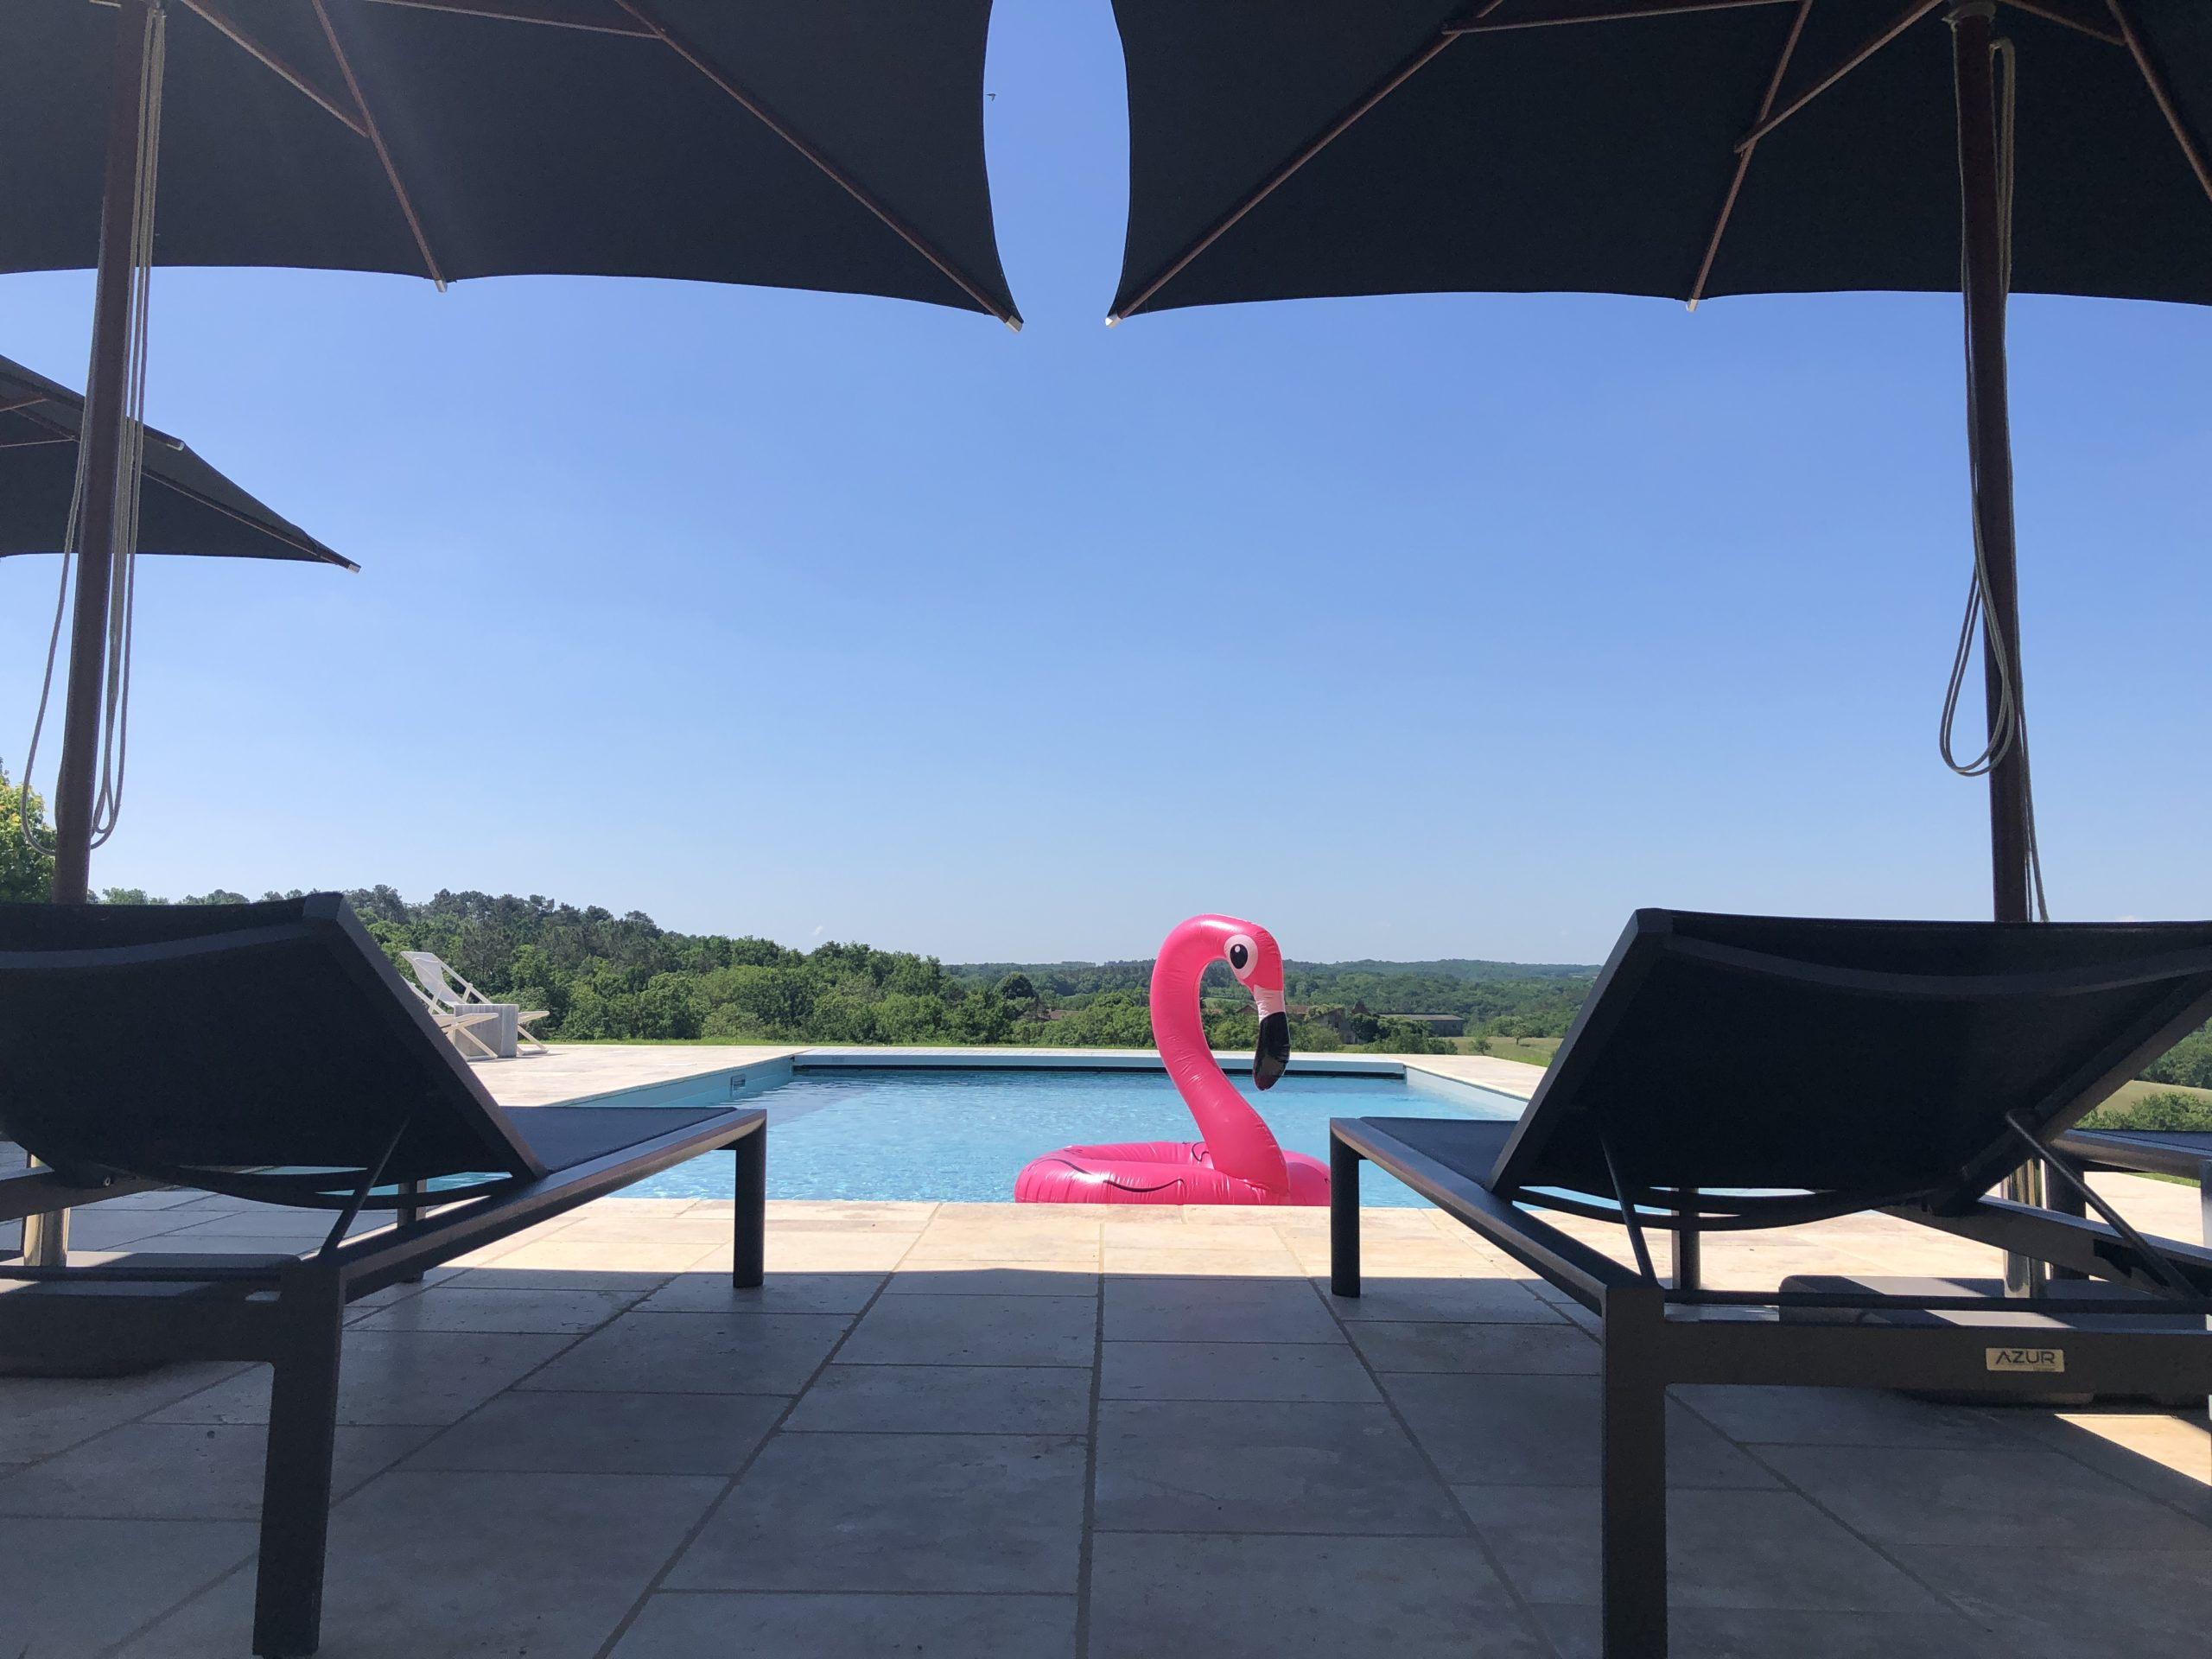 The private pool of Le Mas, a 5-bedroom gîte in the Dordogne, with Gescove parasols and sun loungers and a pink inflatable flamingo